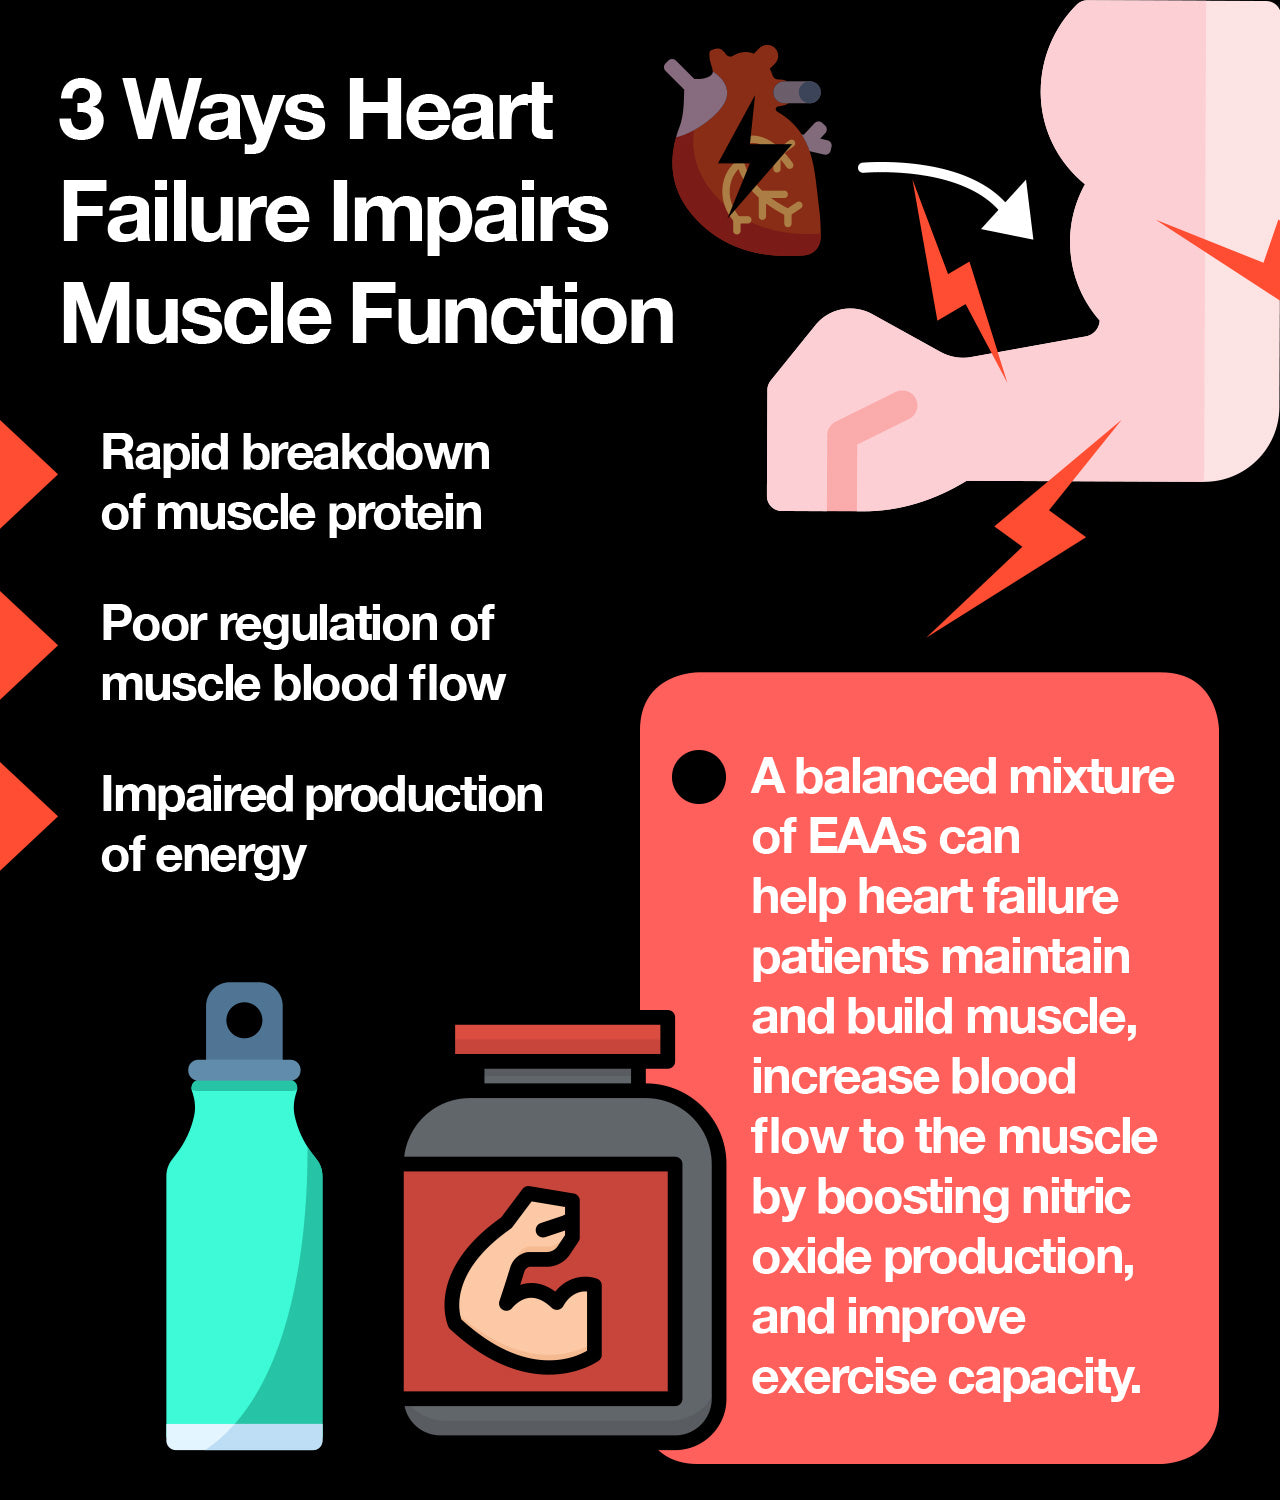 the impact of heart failure on muscle function